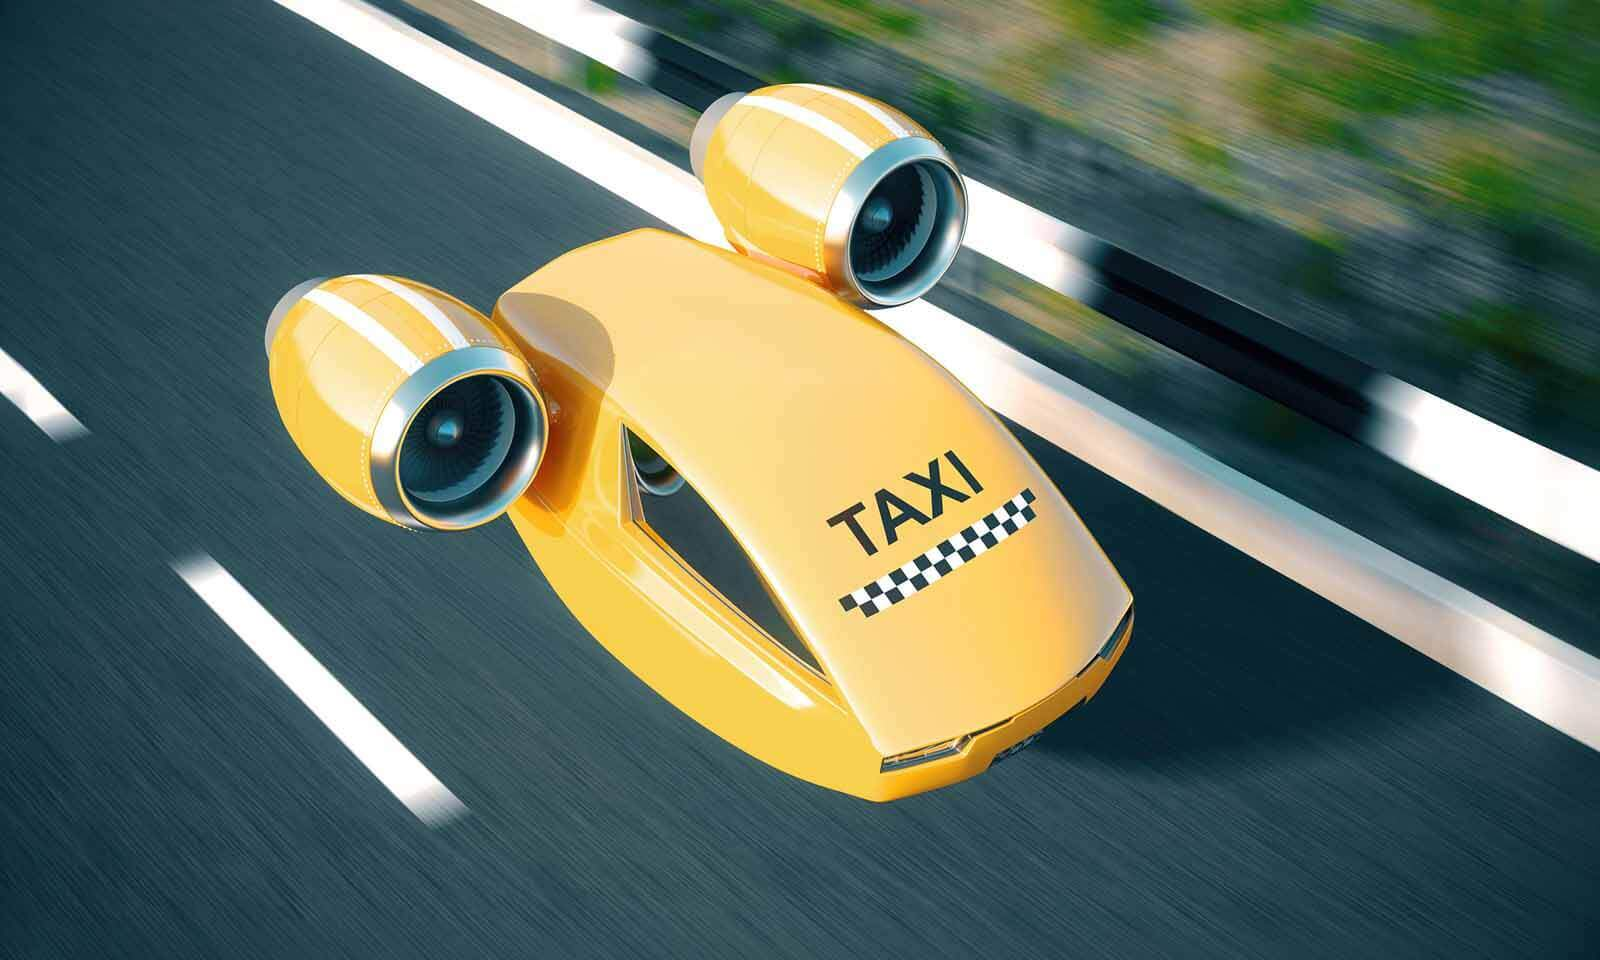 Urban Air and Taxi Landscape